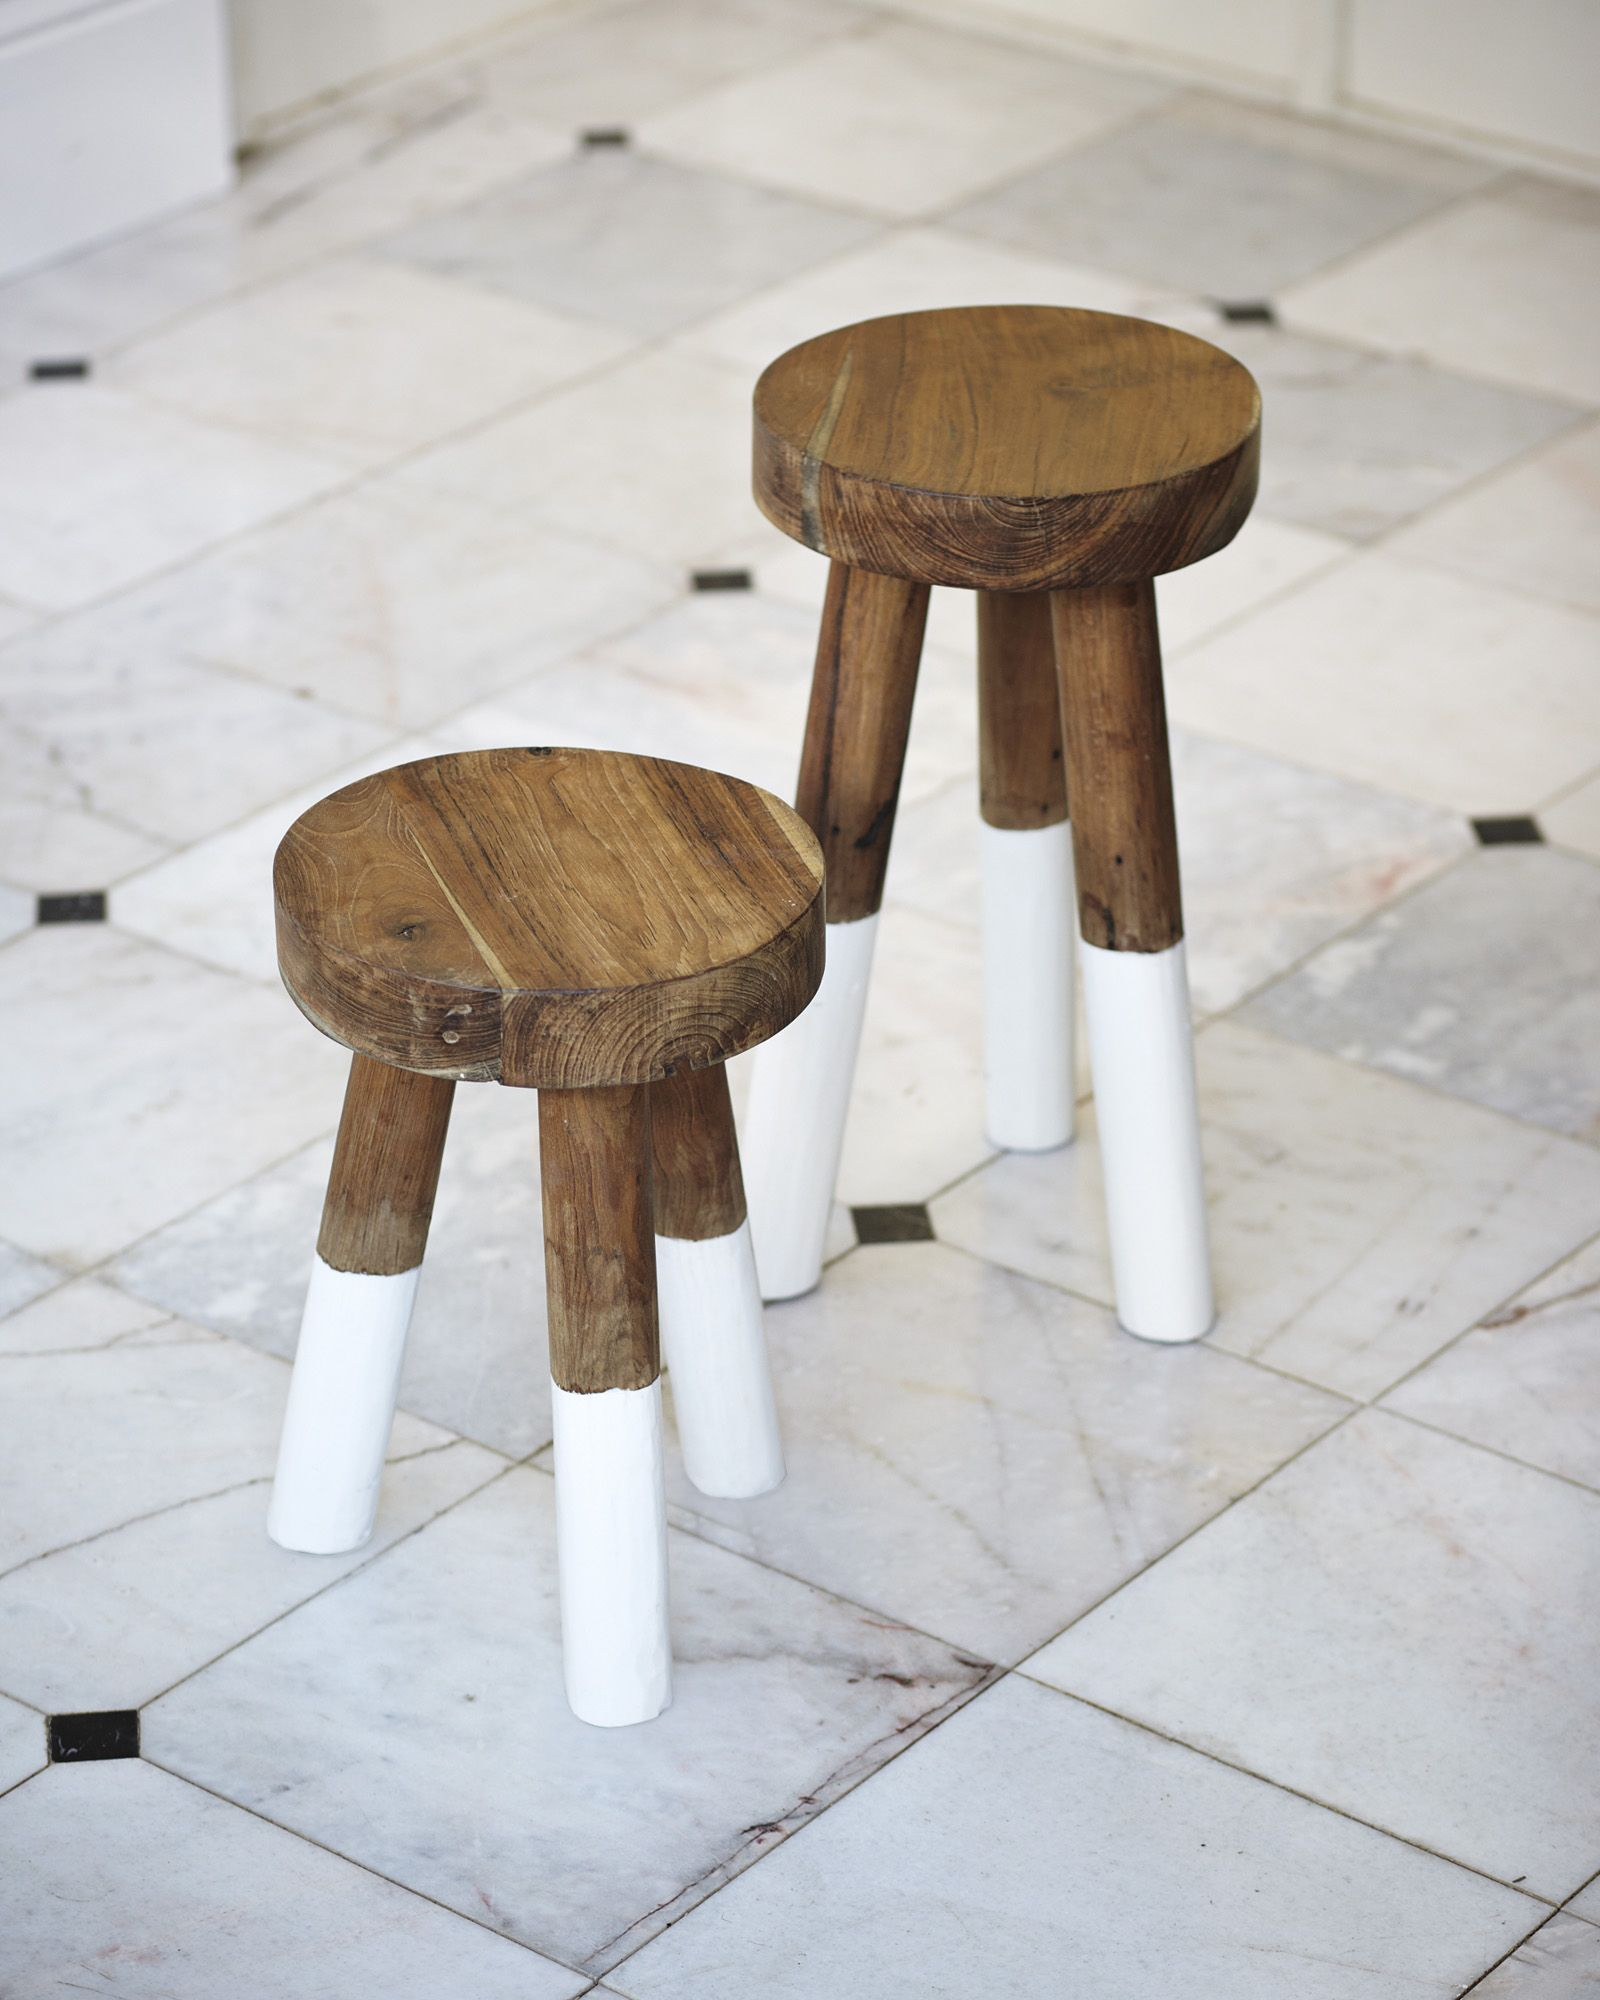 Dip Dyed Stools In 2020 Dip Dyed Stools Retro Dining Chairs Paint Dipping